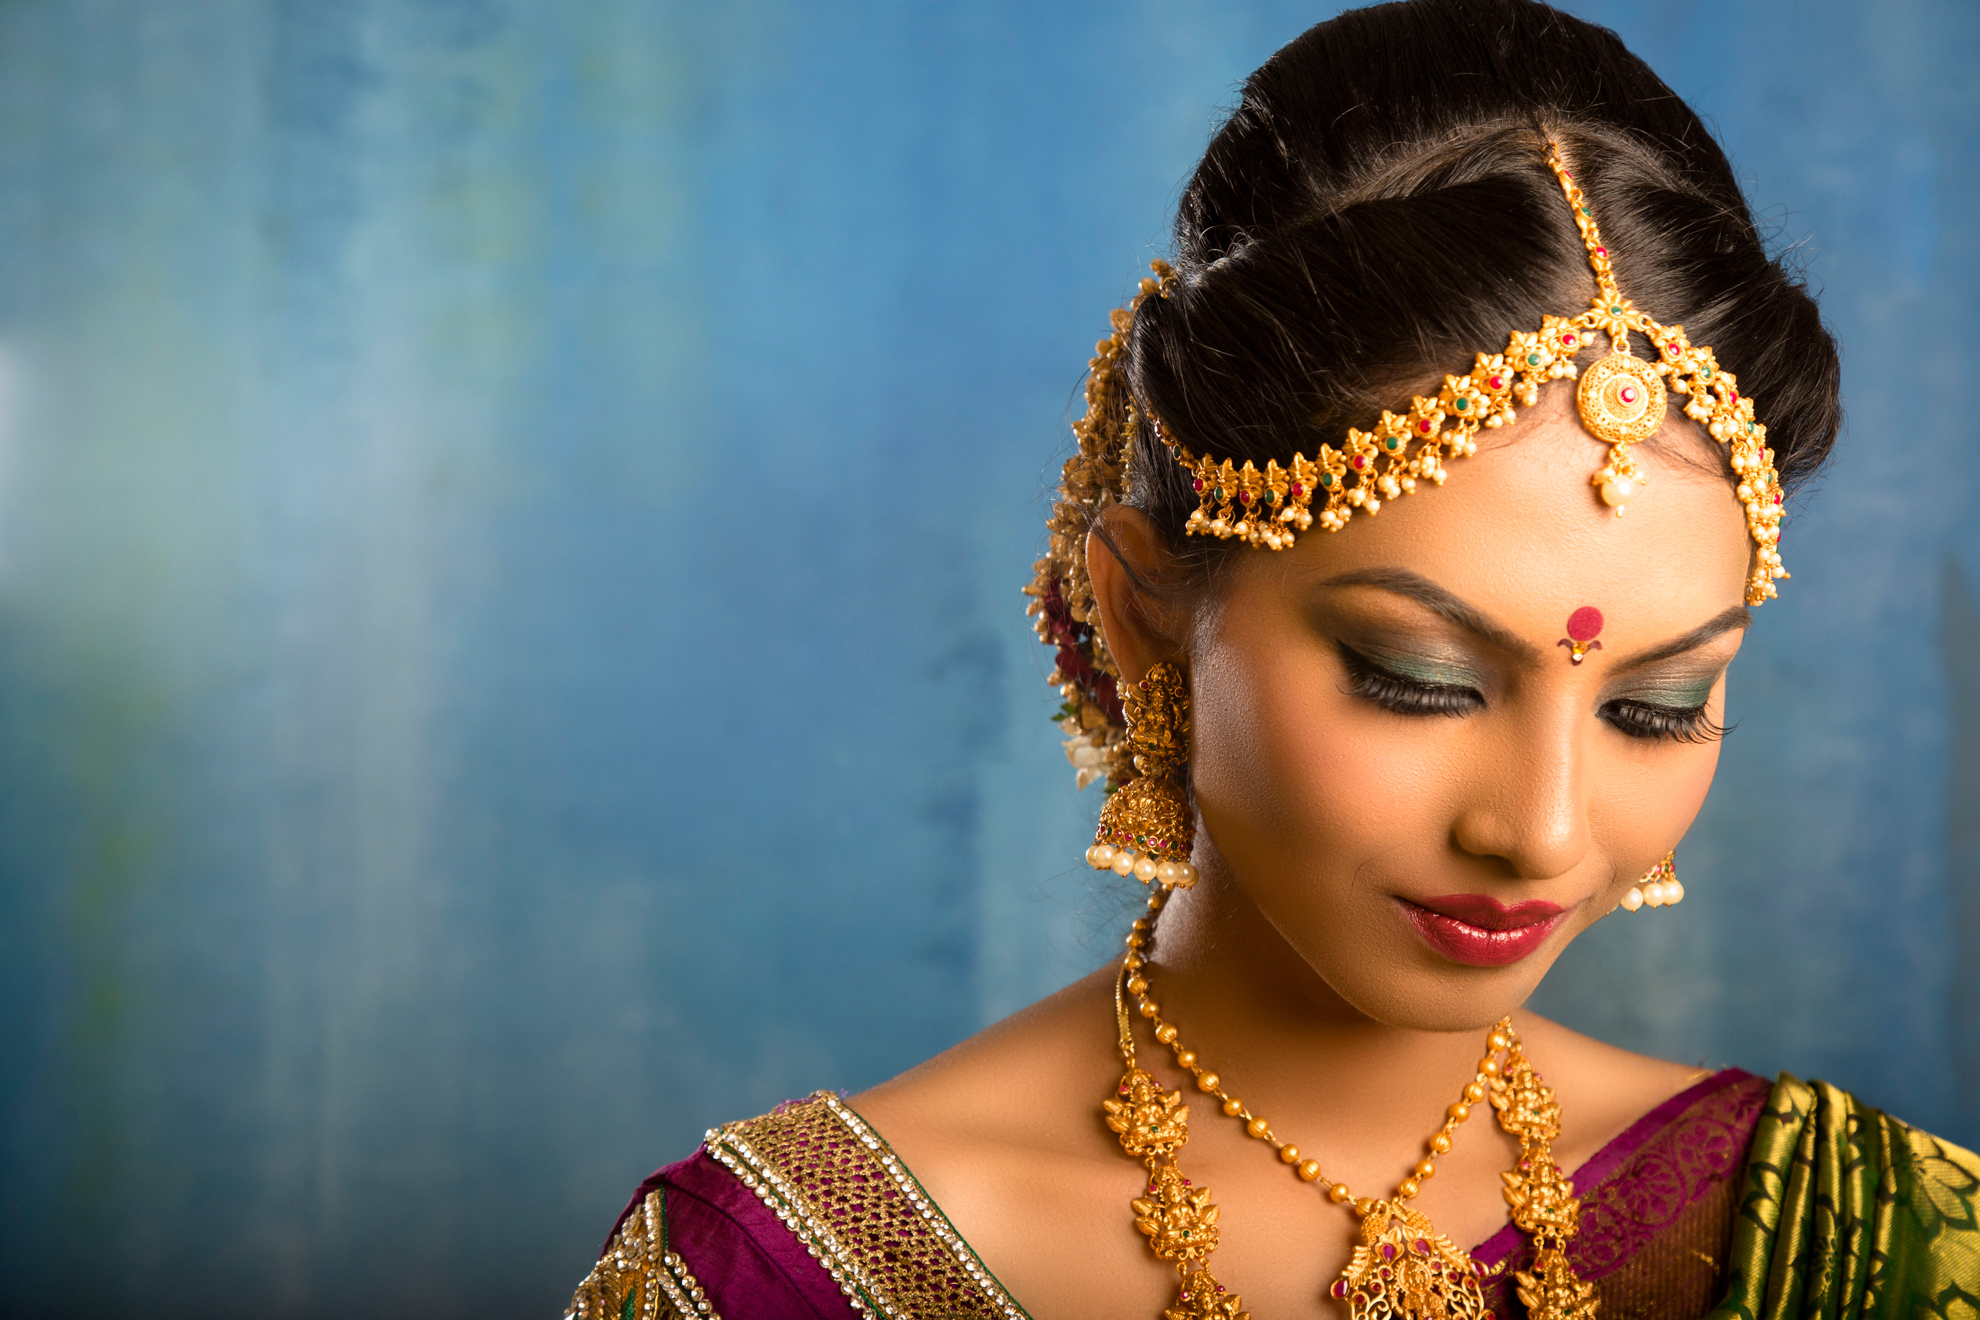 Swapna_Bridal_1_optimized